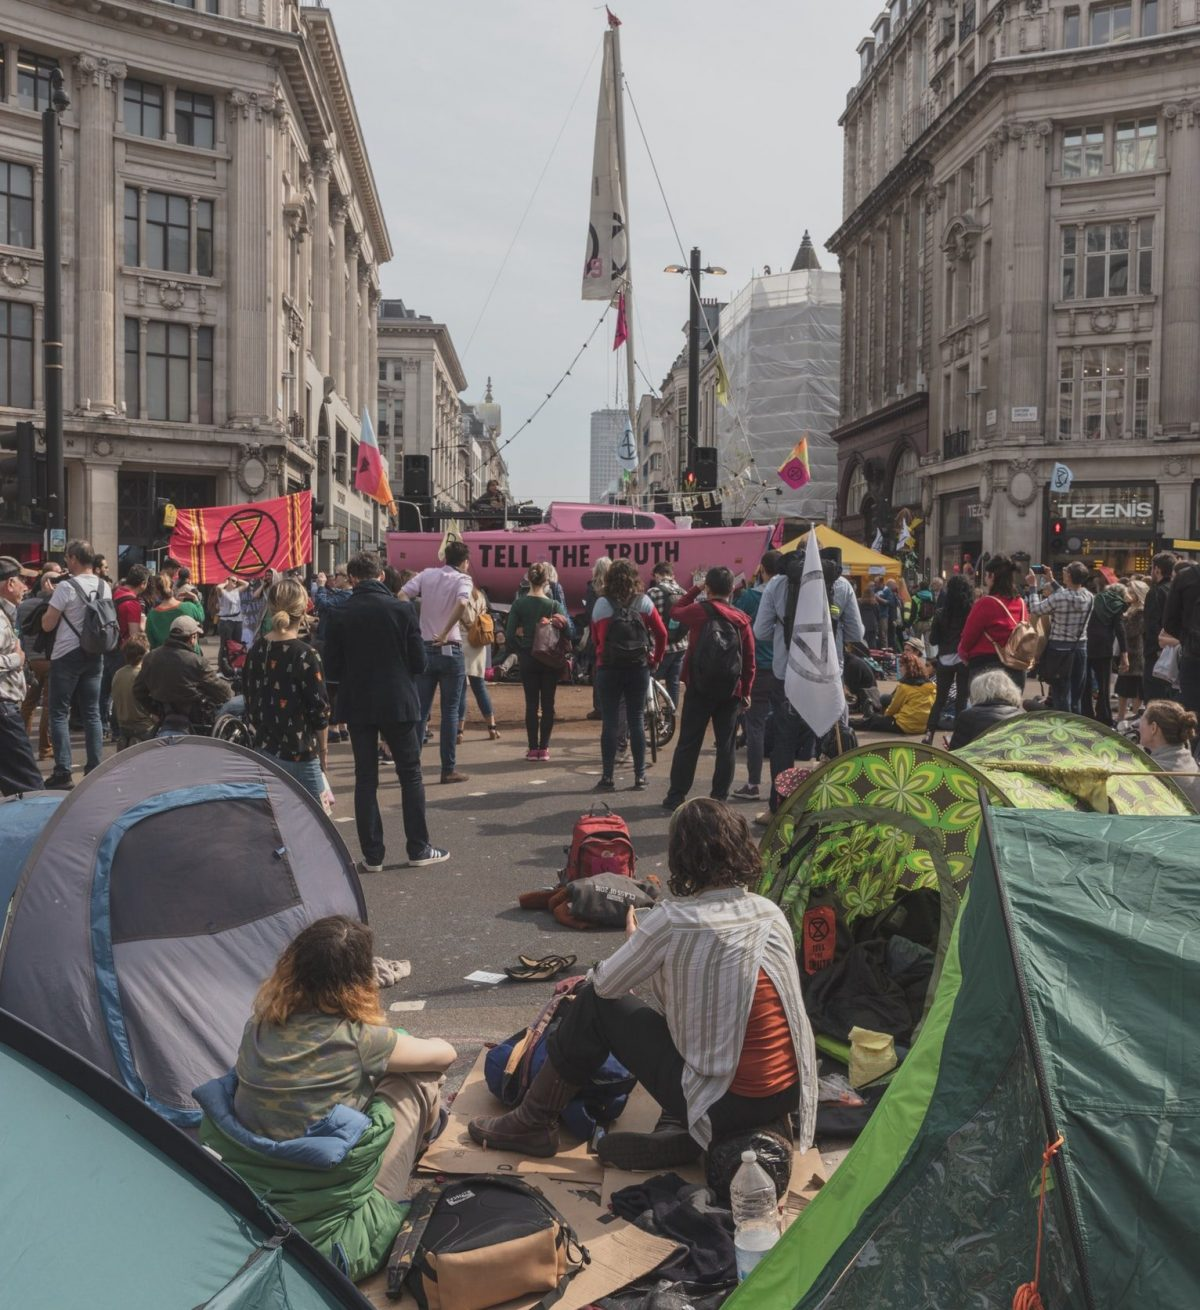 'This Is An Emergency!': My Experience Protesting With Extinction Rebellion